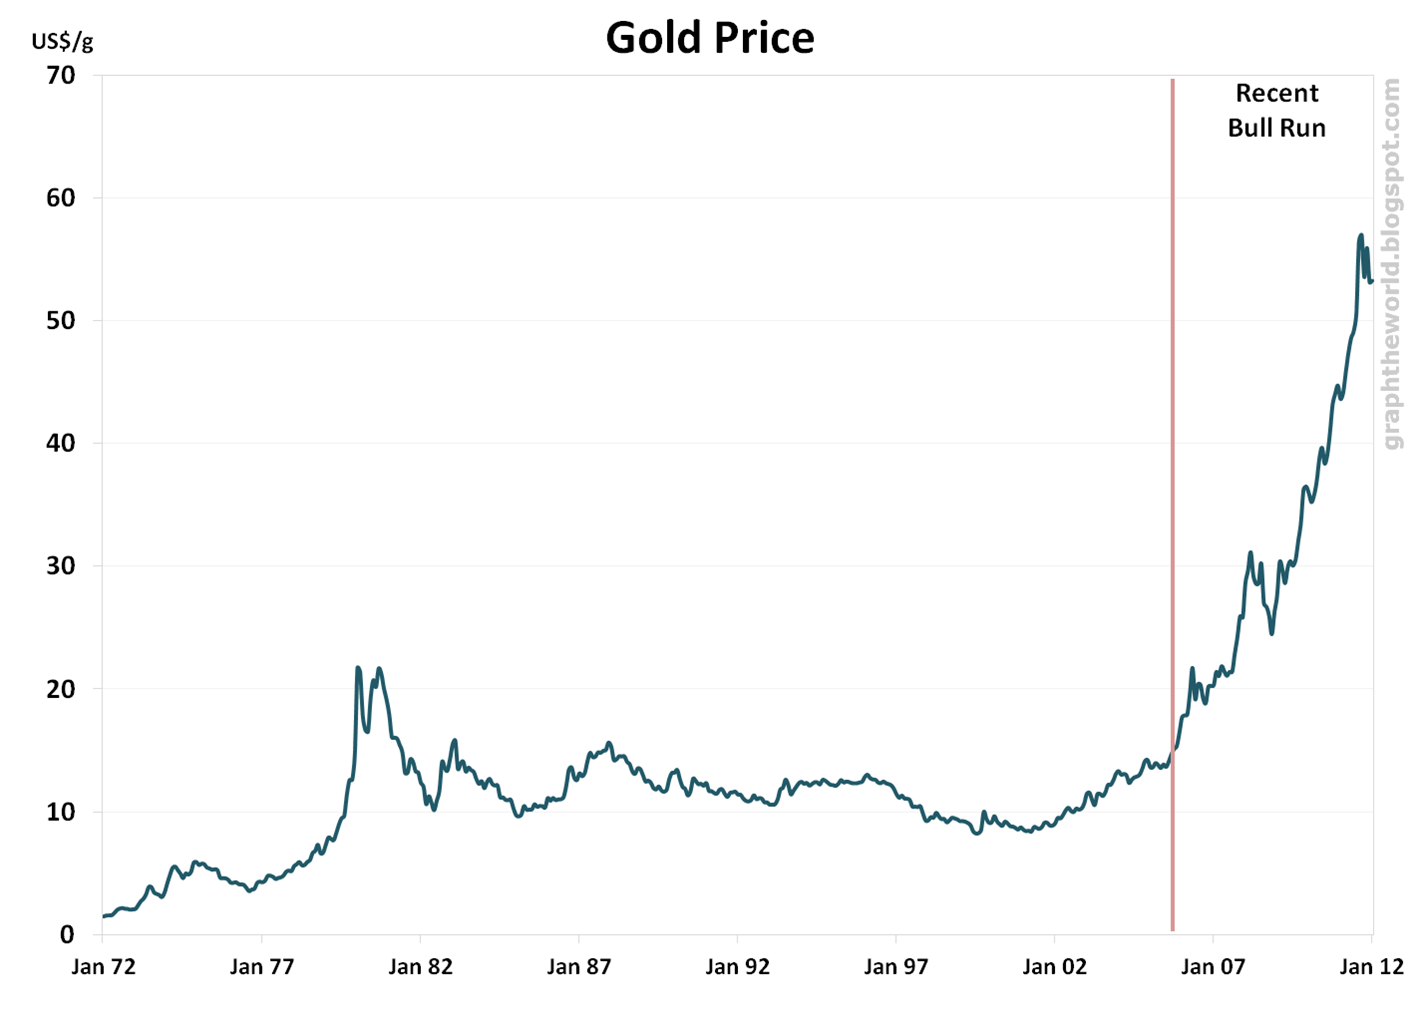 Much Gold Price How Much is an Ounce of Gold